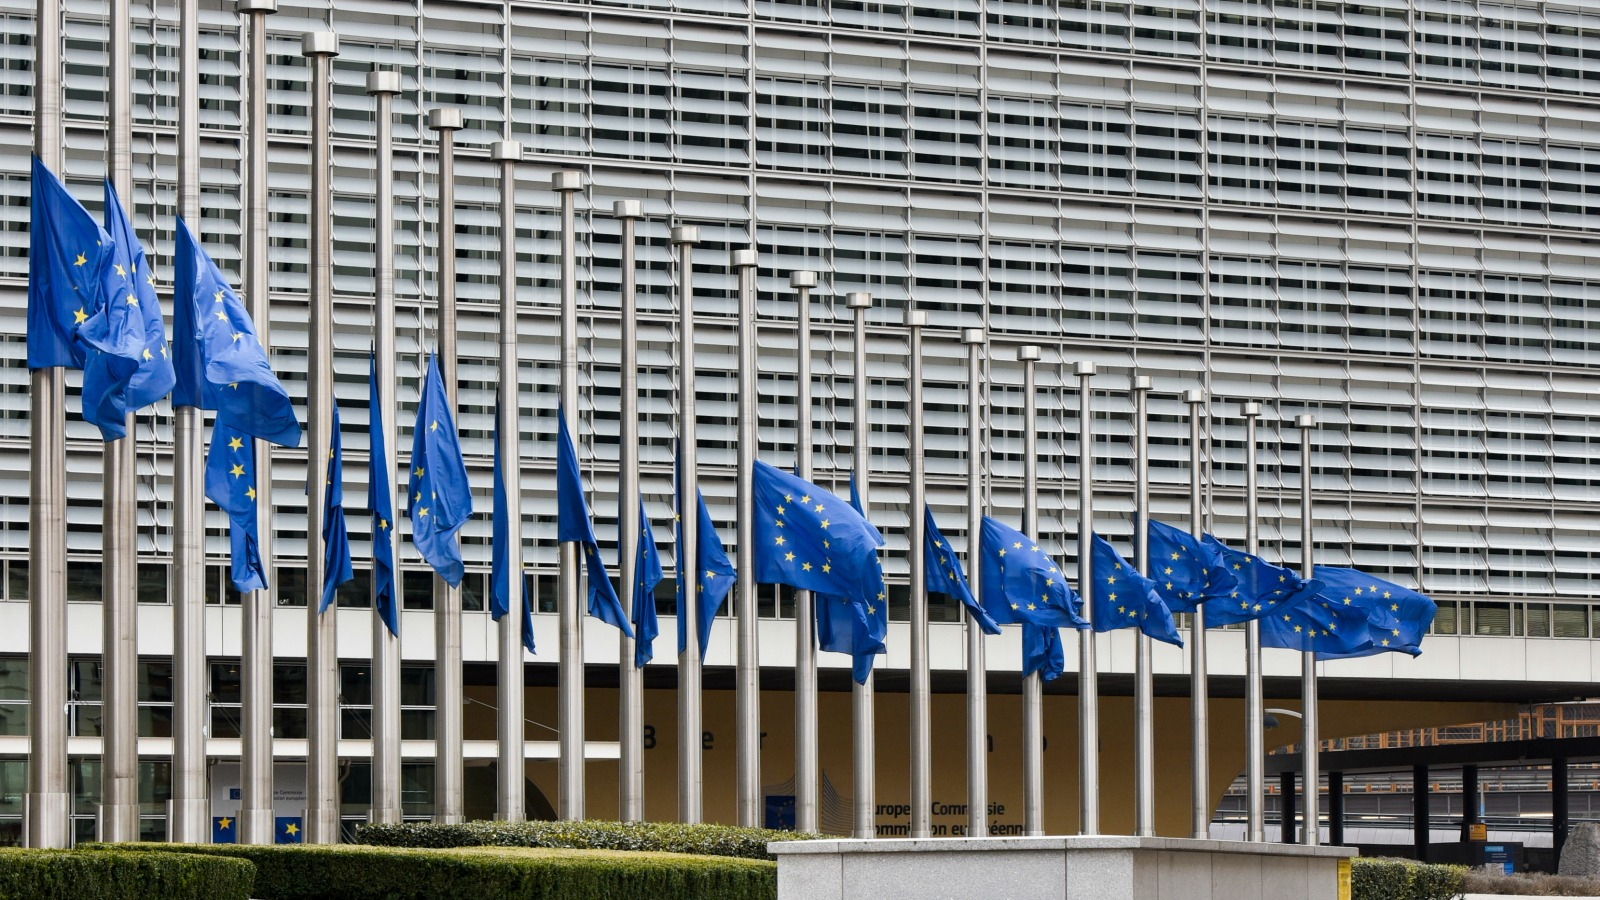 State Building In The European Union